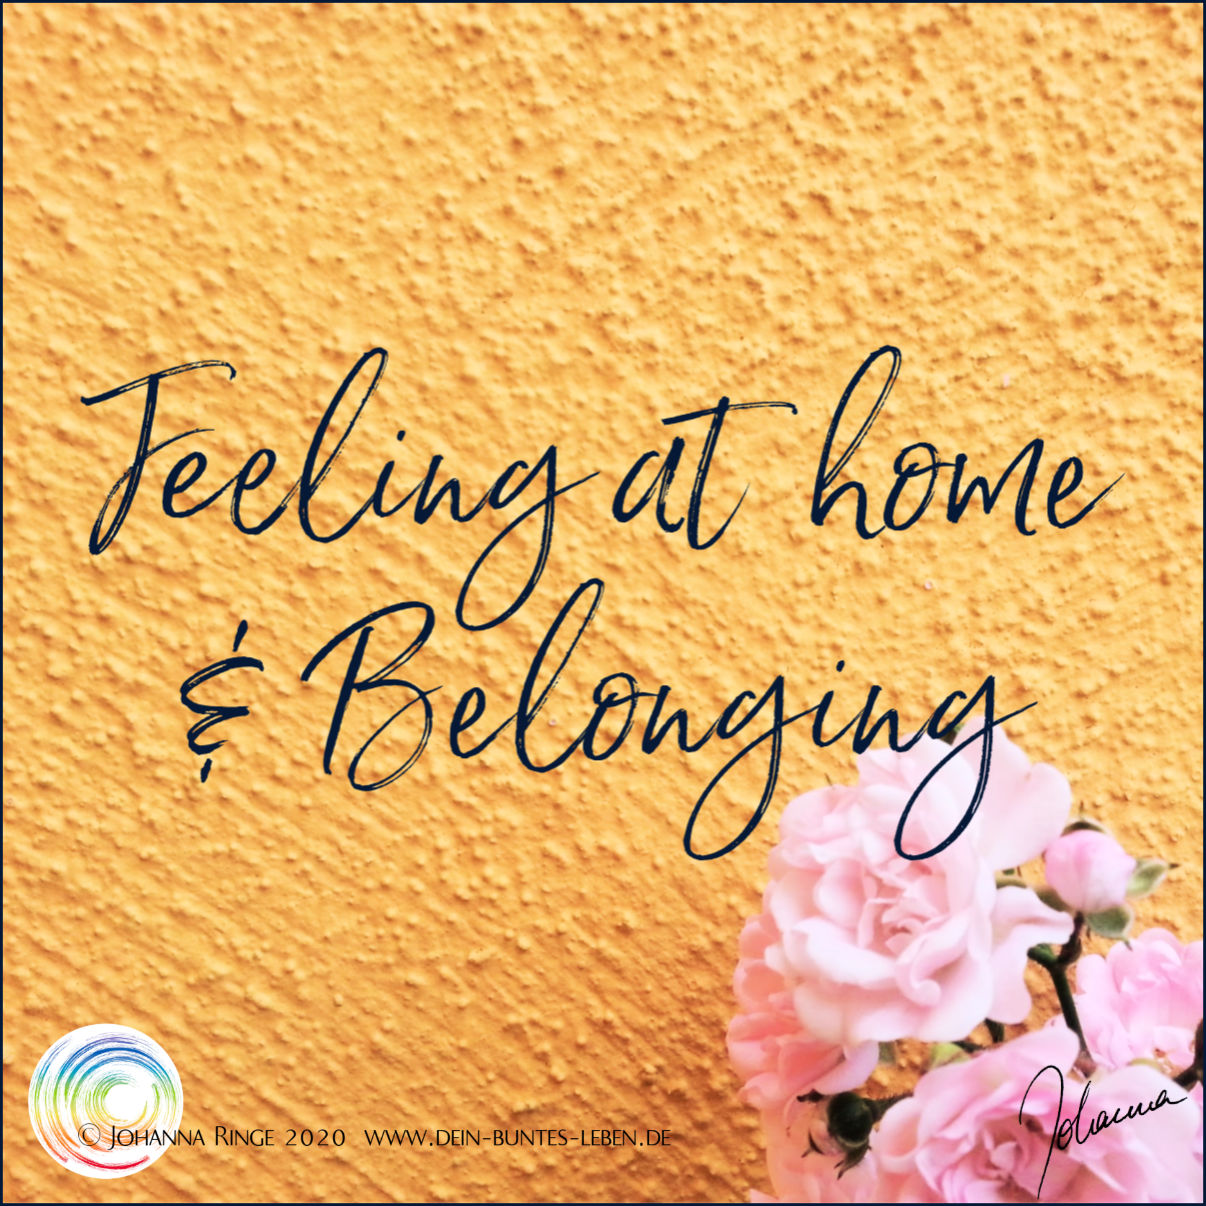 Feeling at home & belonging, text on photo of Roses before a wall. ©Johanna Ringe 2020. www.johannaringe.com